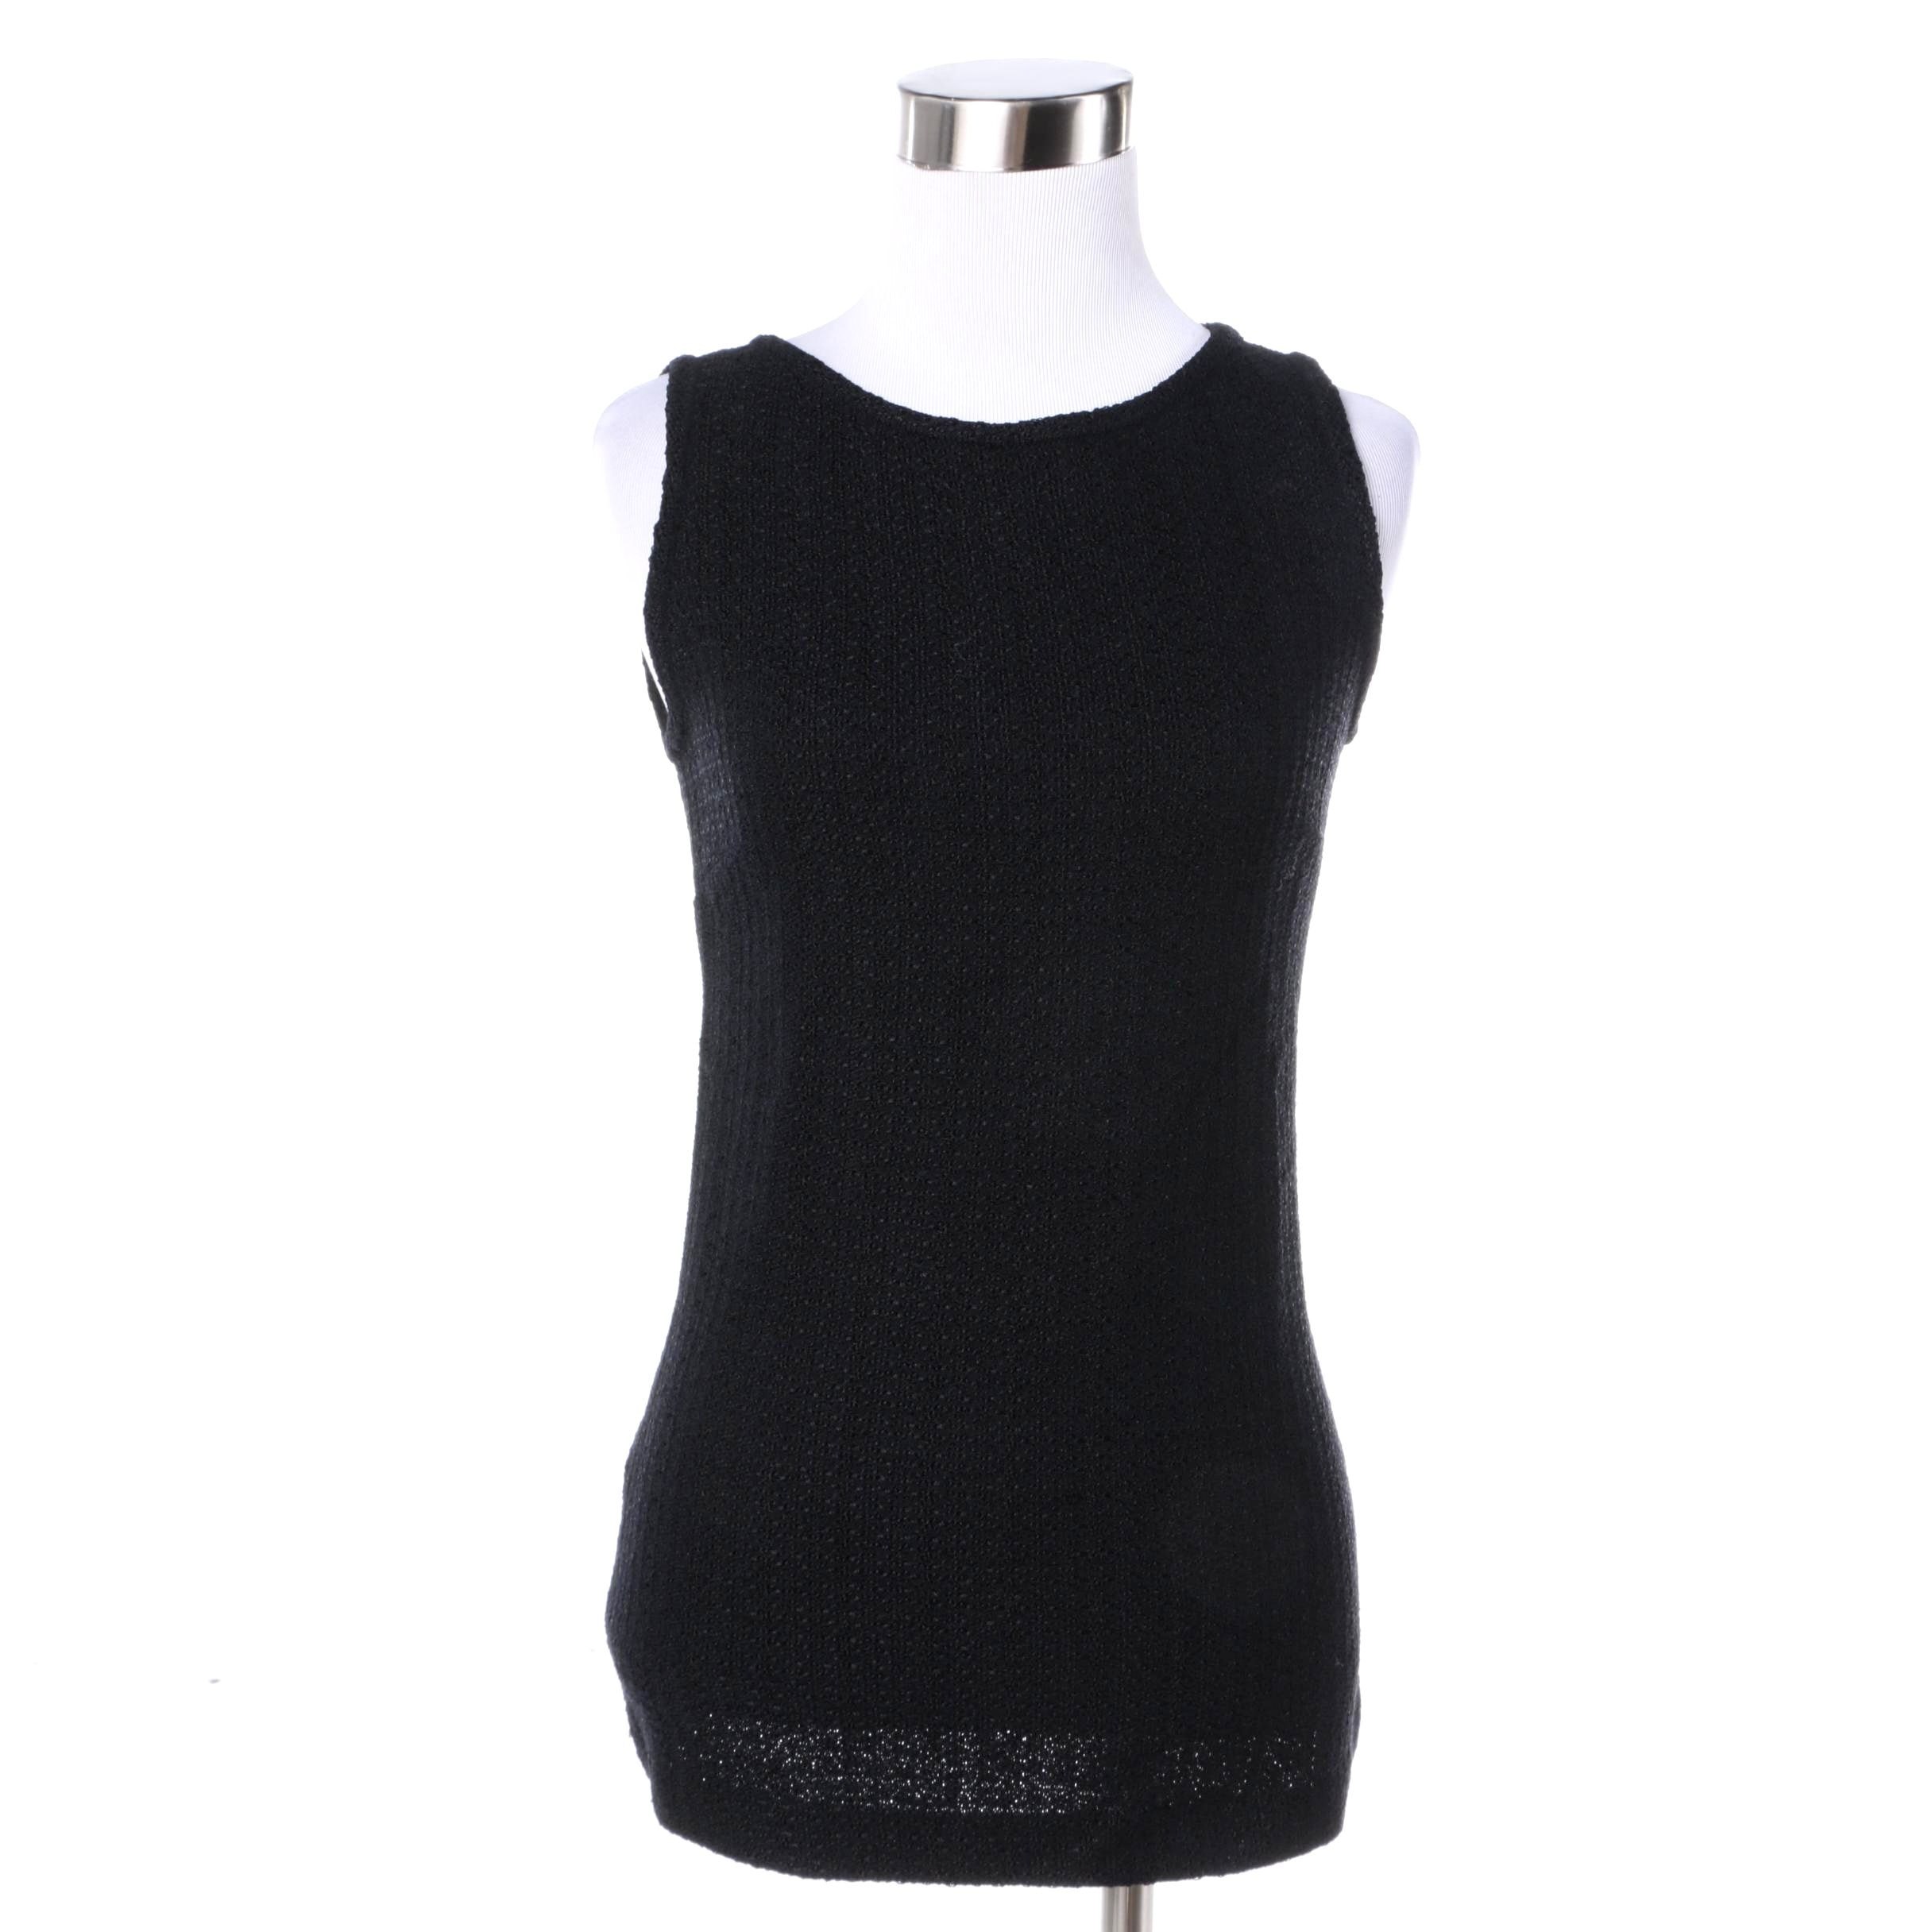 Women's St. John Collection Black Knit Sleeveless Top